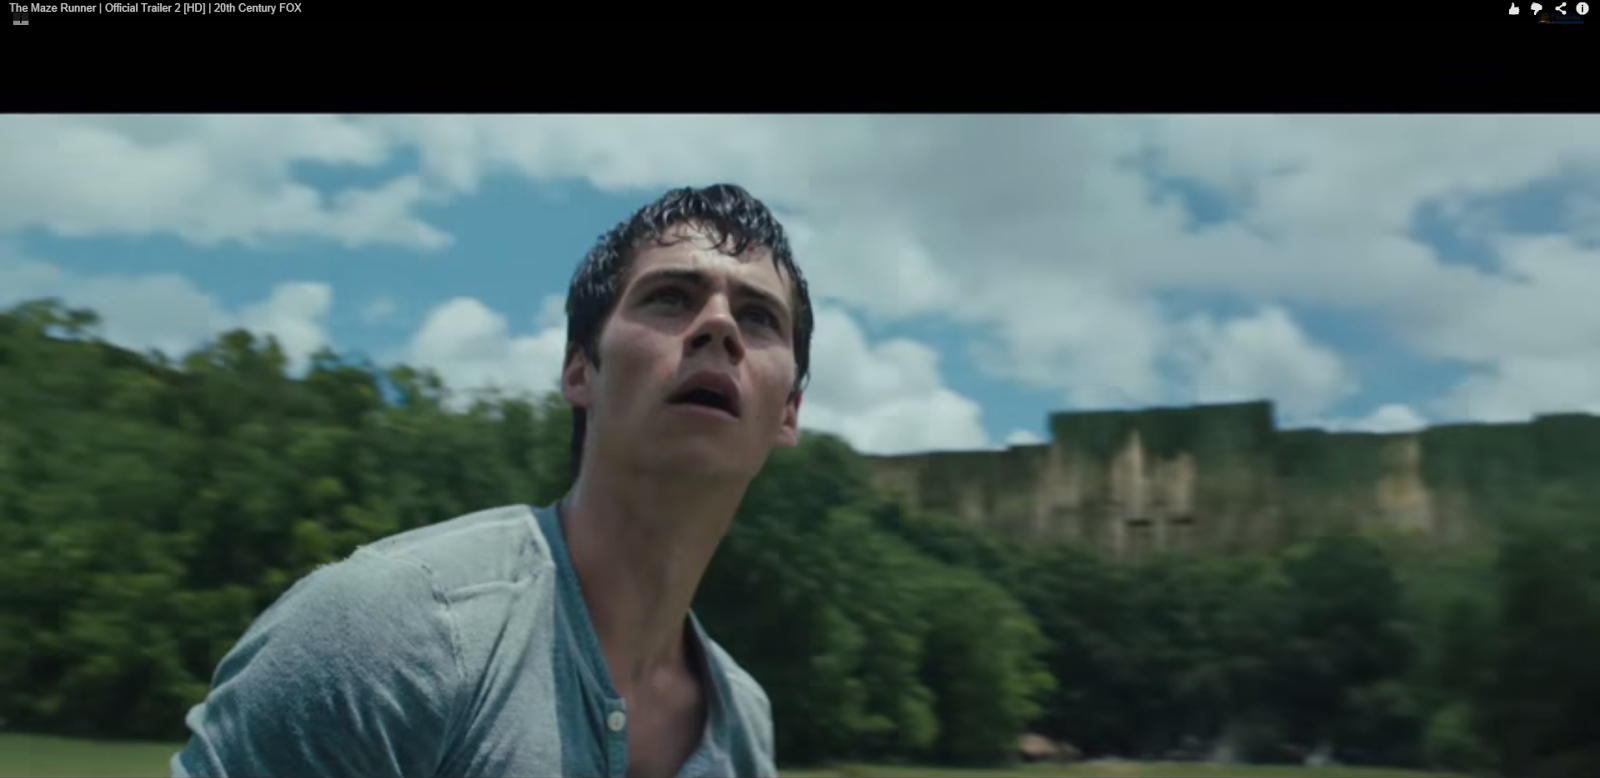 The Maze Runner Trailer Screencap